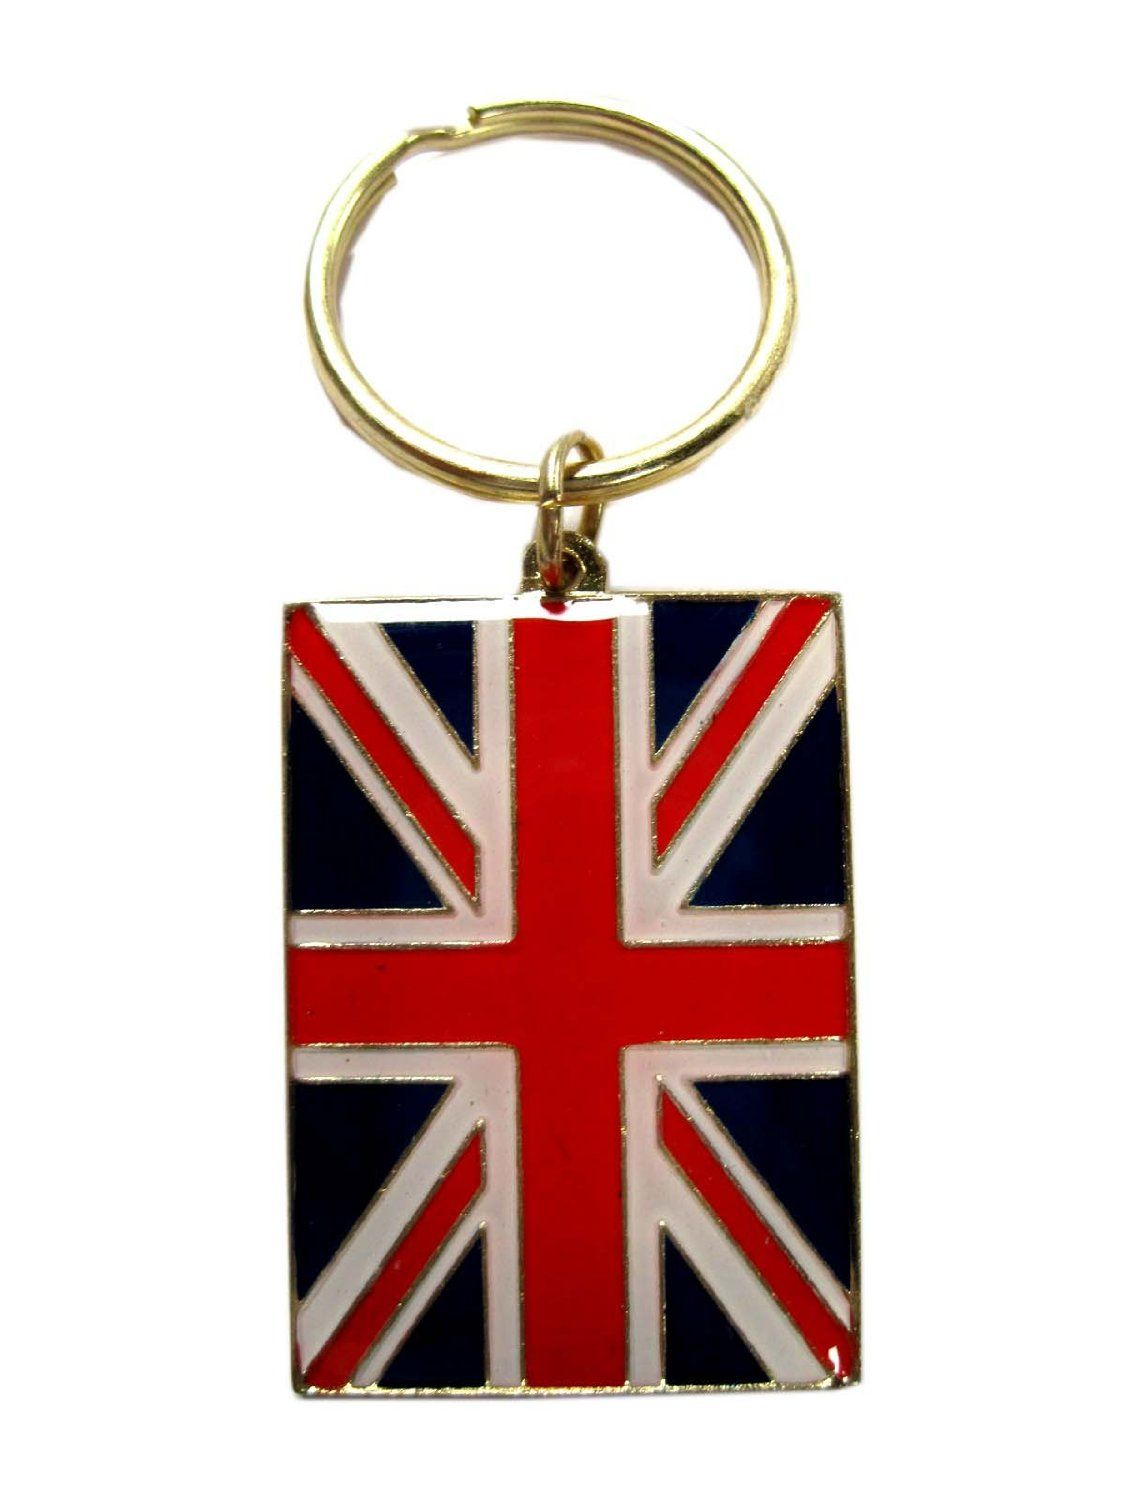 KEEP CALM AND DRINK TEA UNION JACK KEYRING BAG TAG BIRTHDAY GIFT